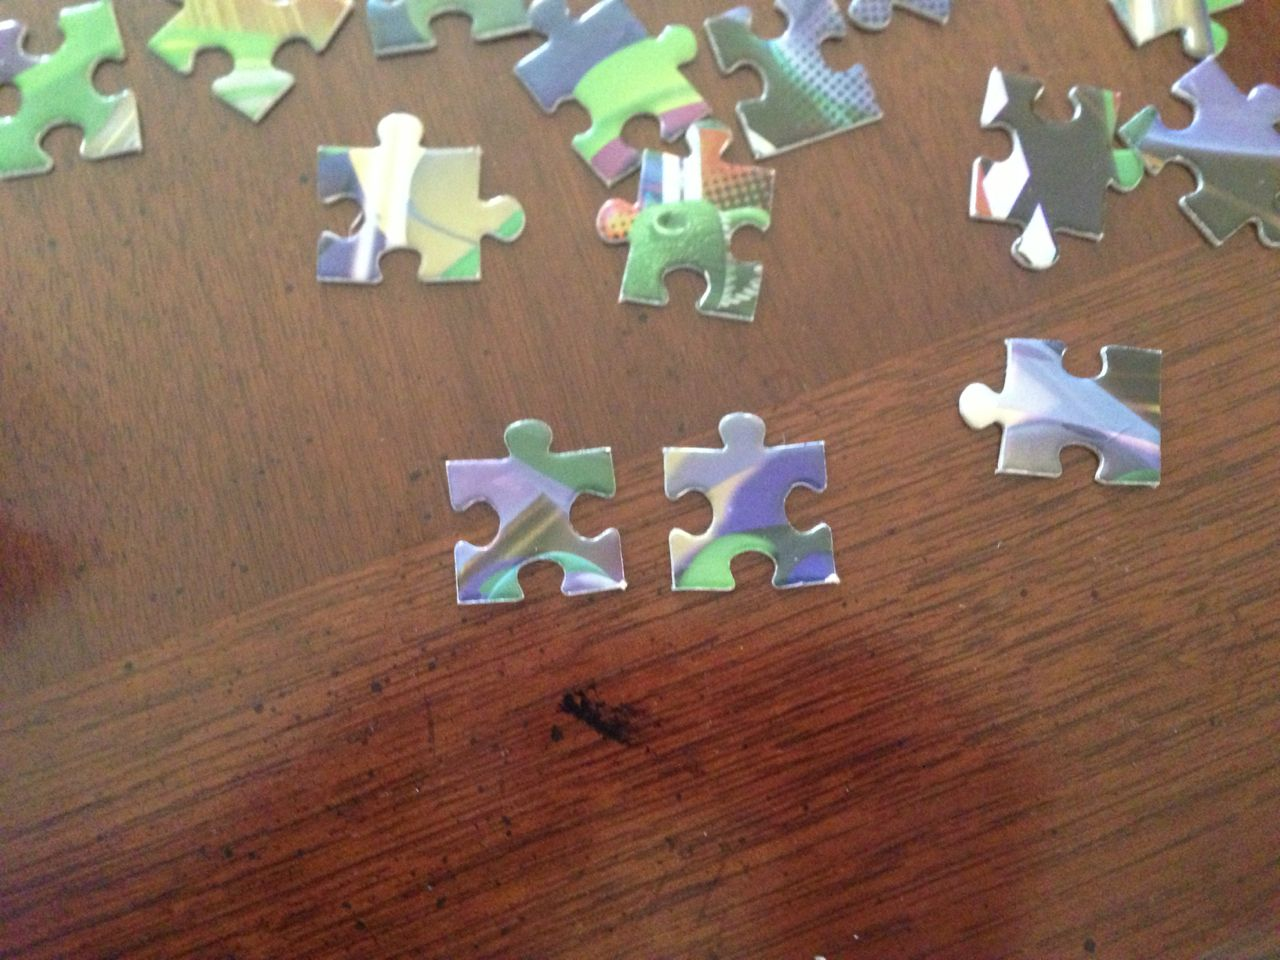 Life's Puzzles